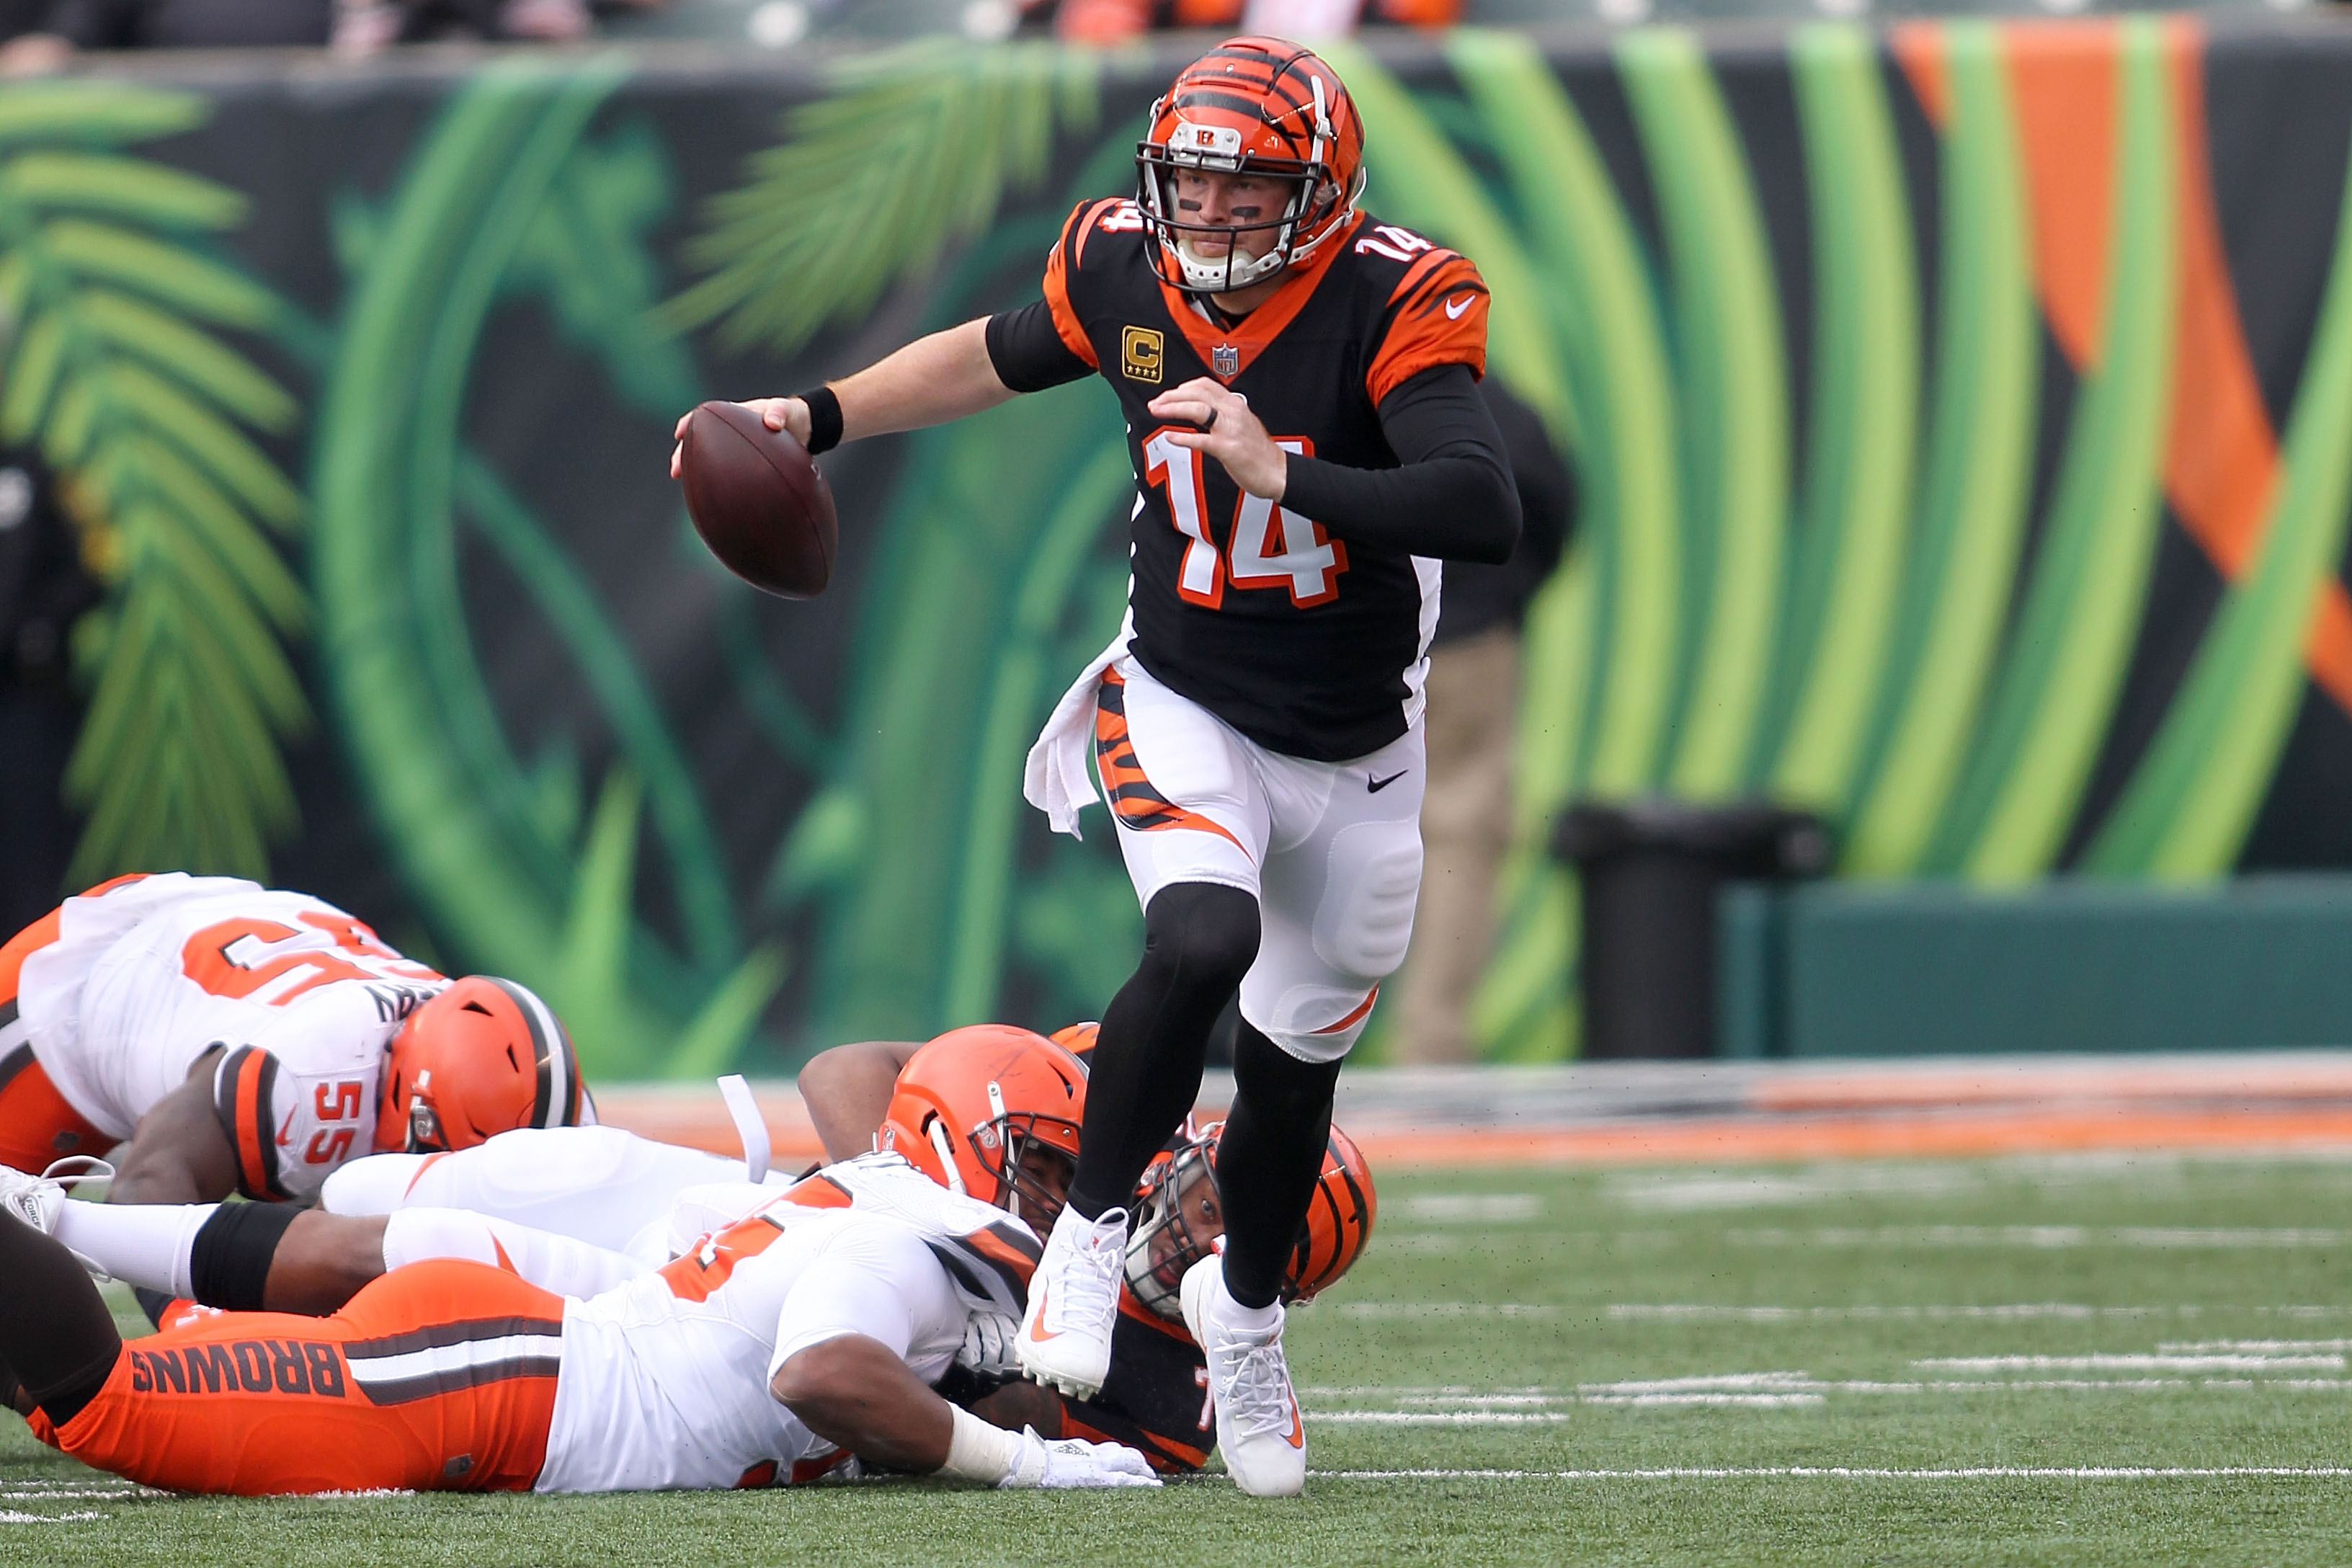 d483c9671f9 Bengals QB Andy Dalton has successful thumb surgery  will be ready for  offseason practices